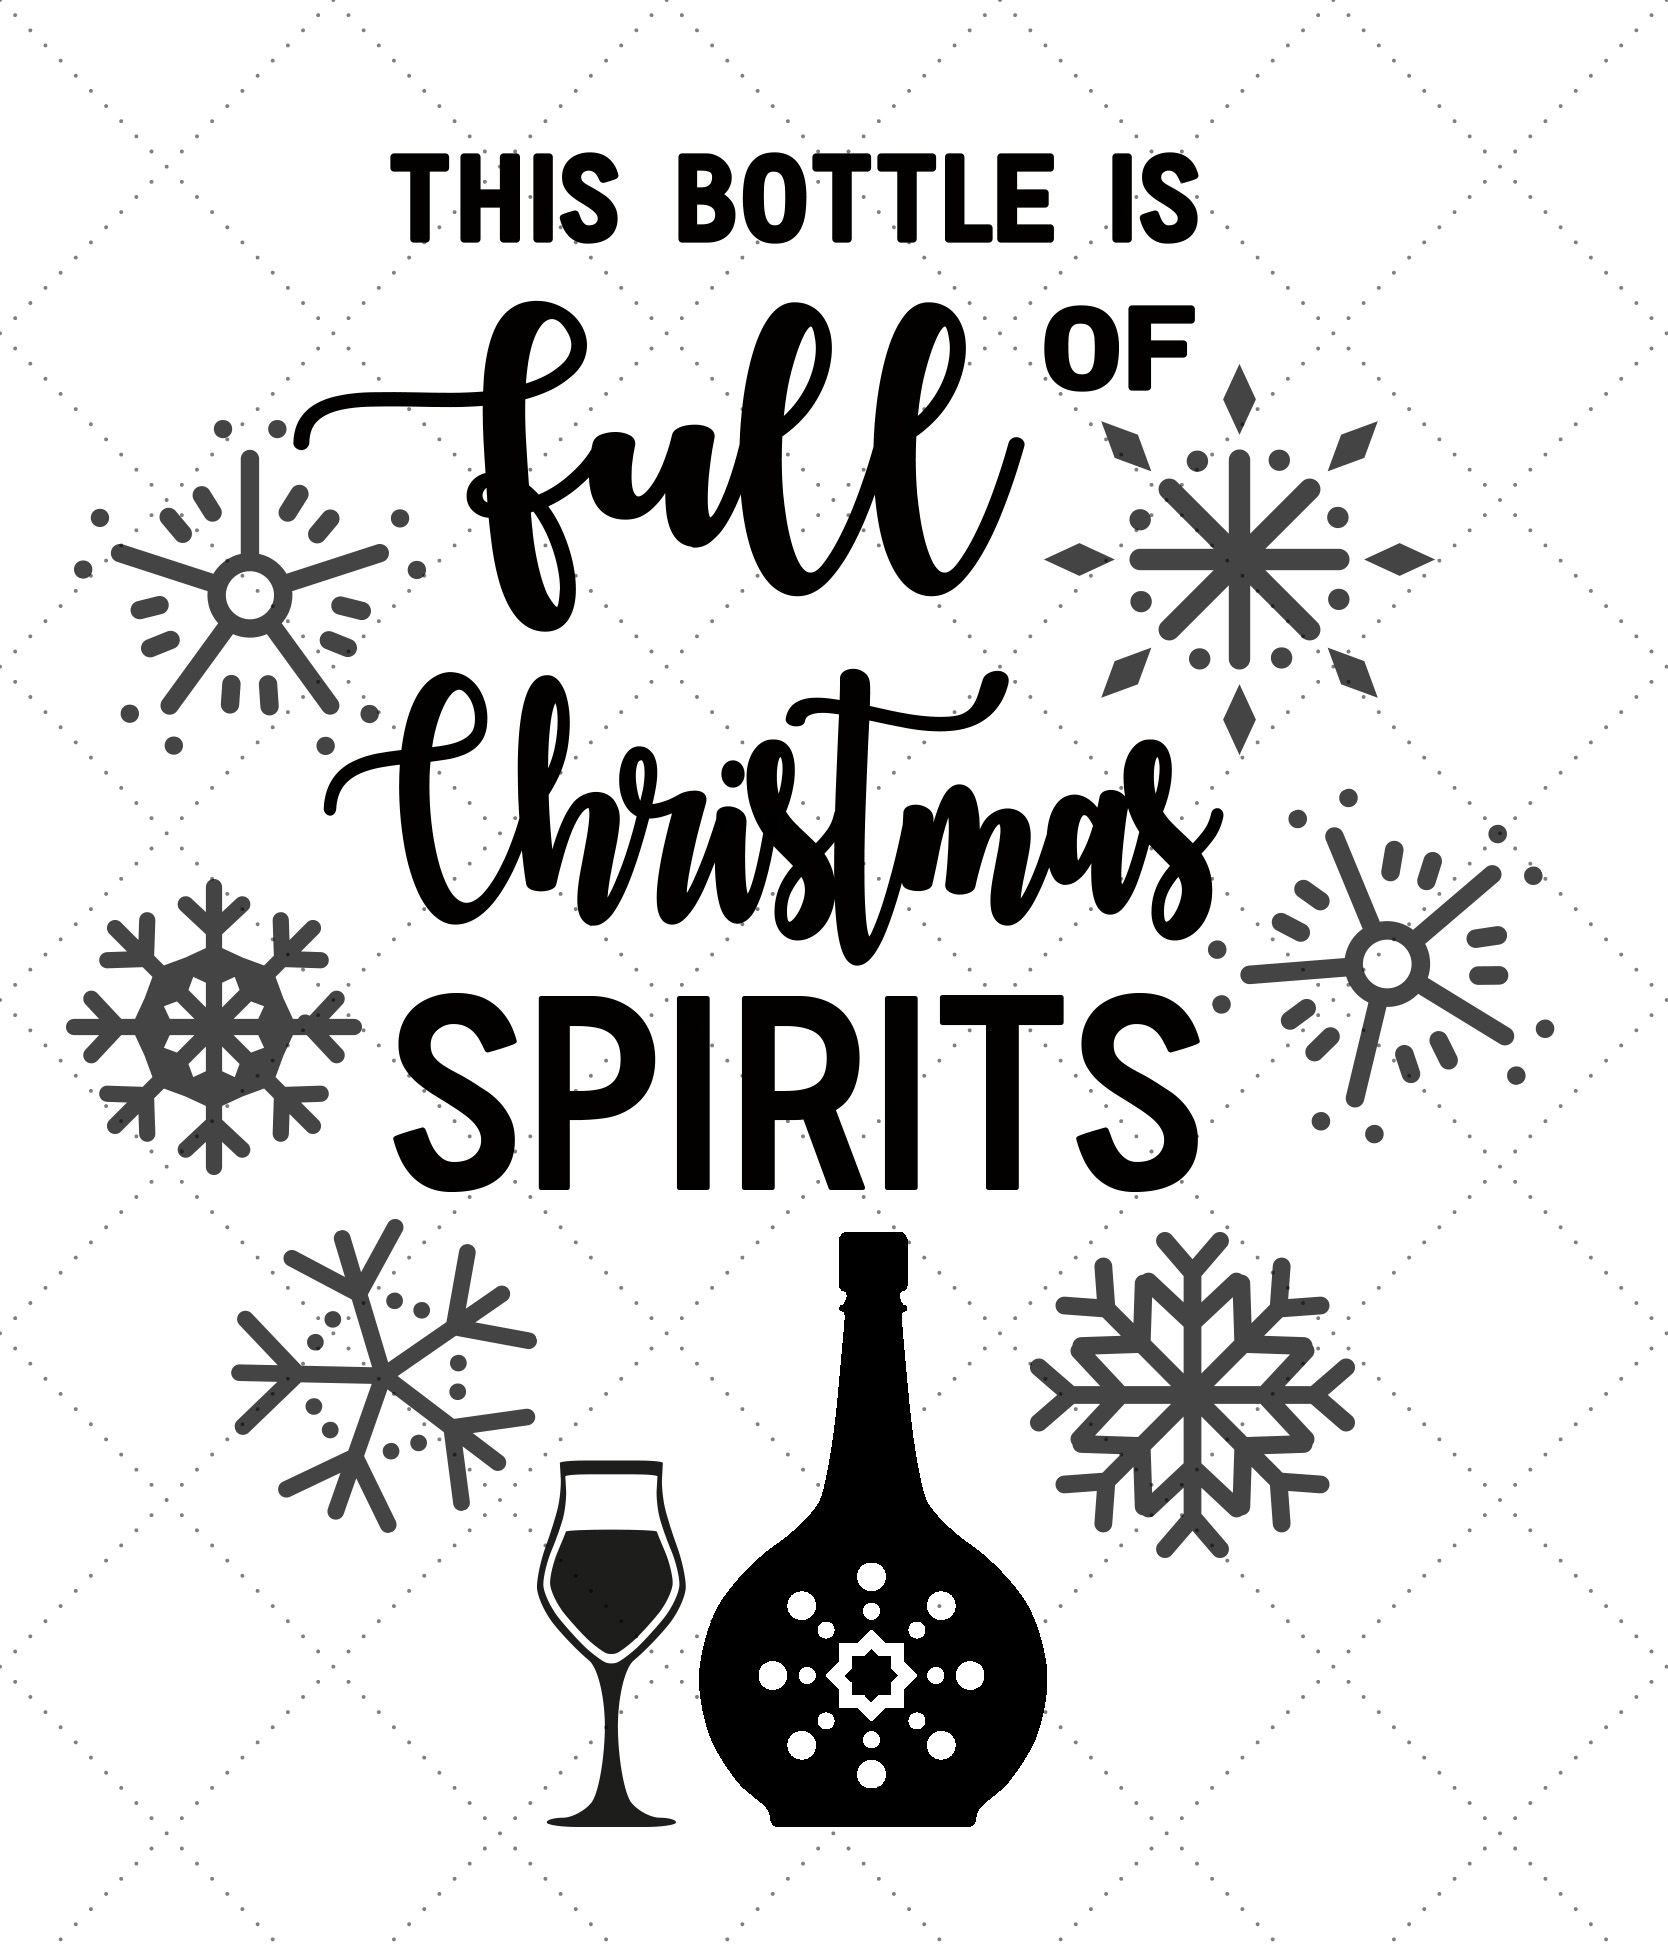 Free SVG File Christmas Spirits Bottle Happiness is